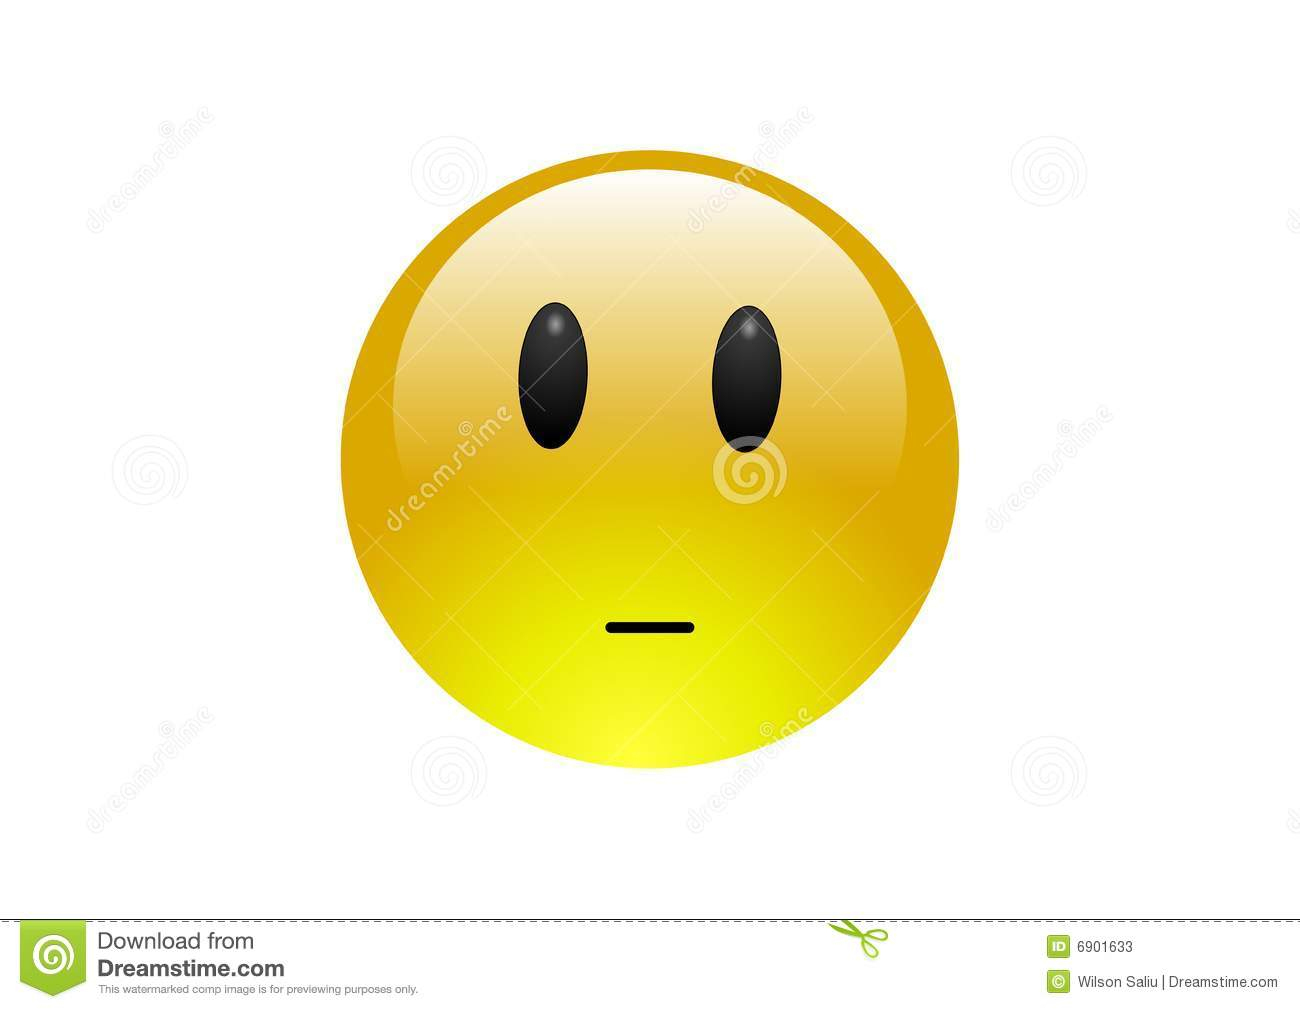 Http Www Dreamstime Com Stock Photos Aqua Emoticons Neutral 2 Image6901633